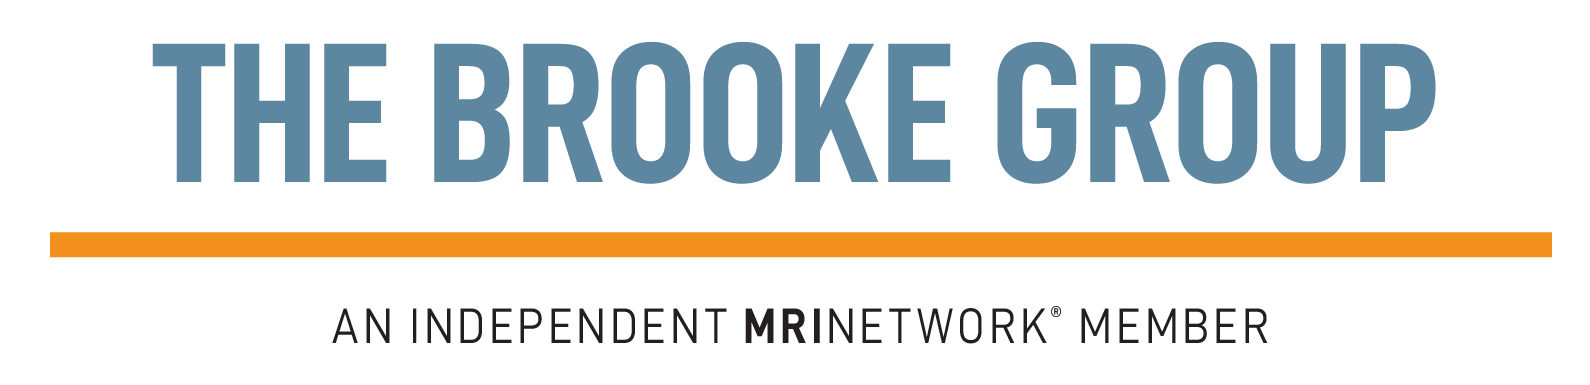 The Brooke Group